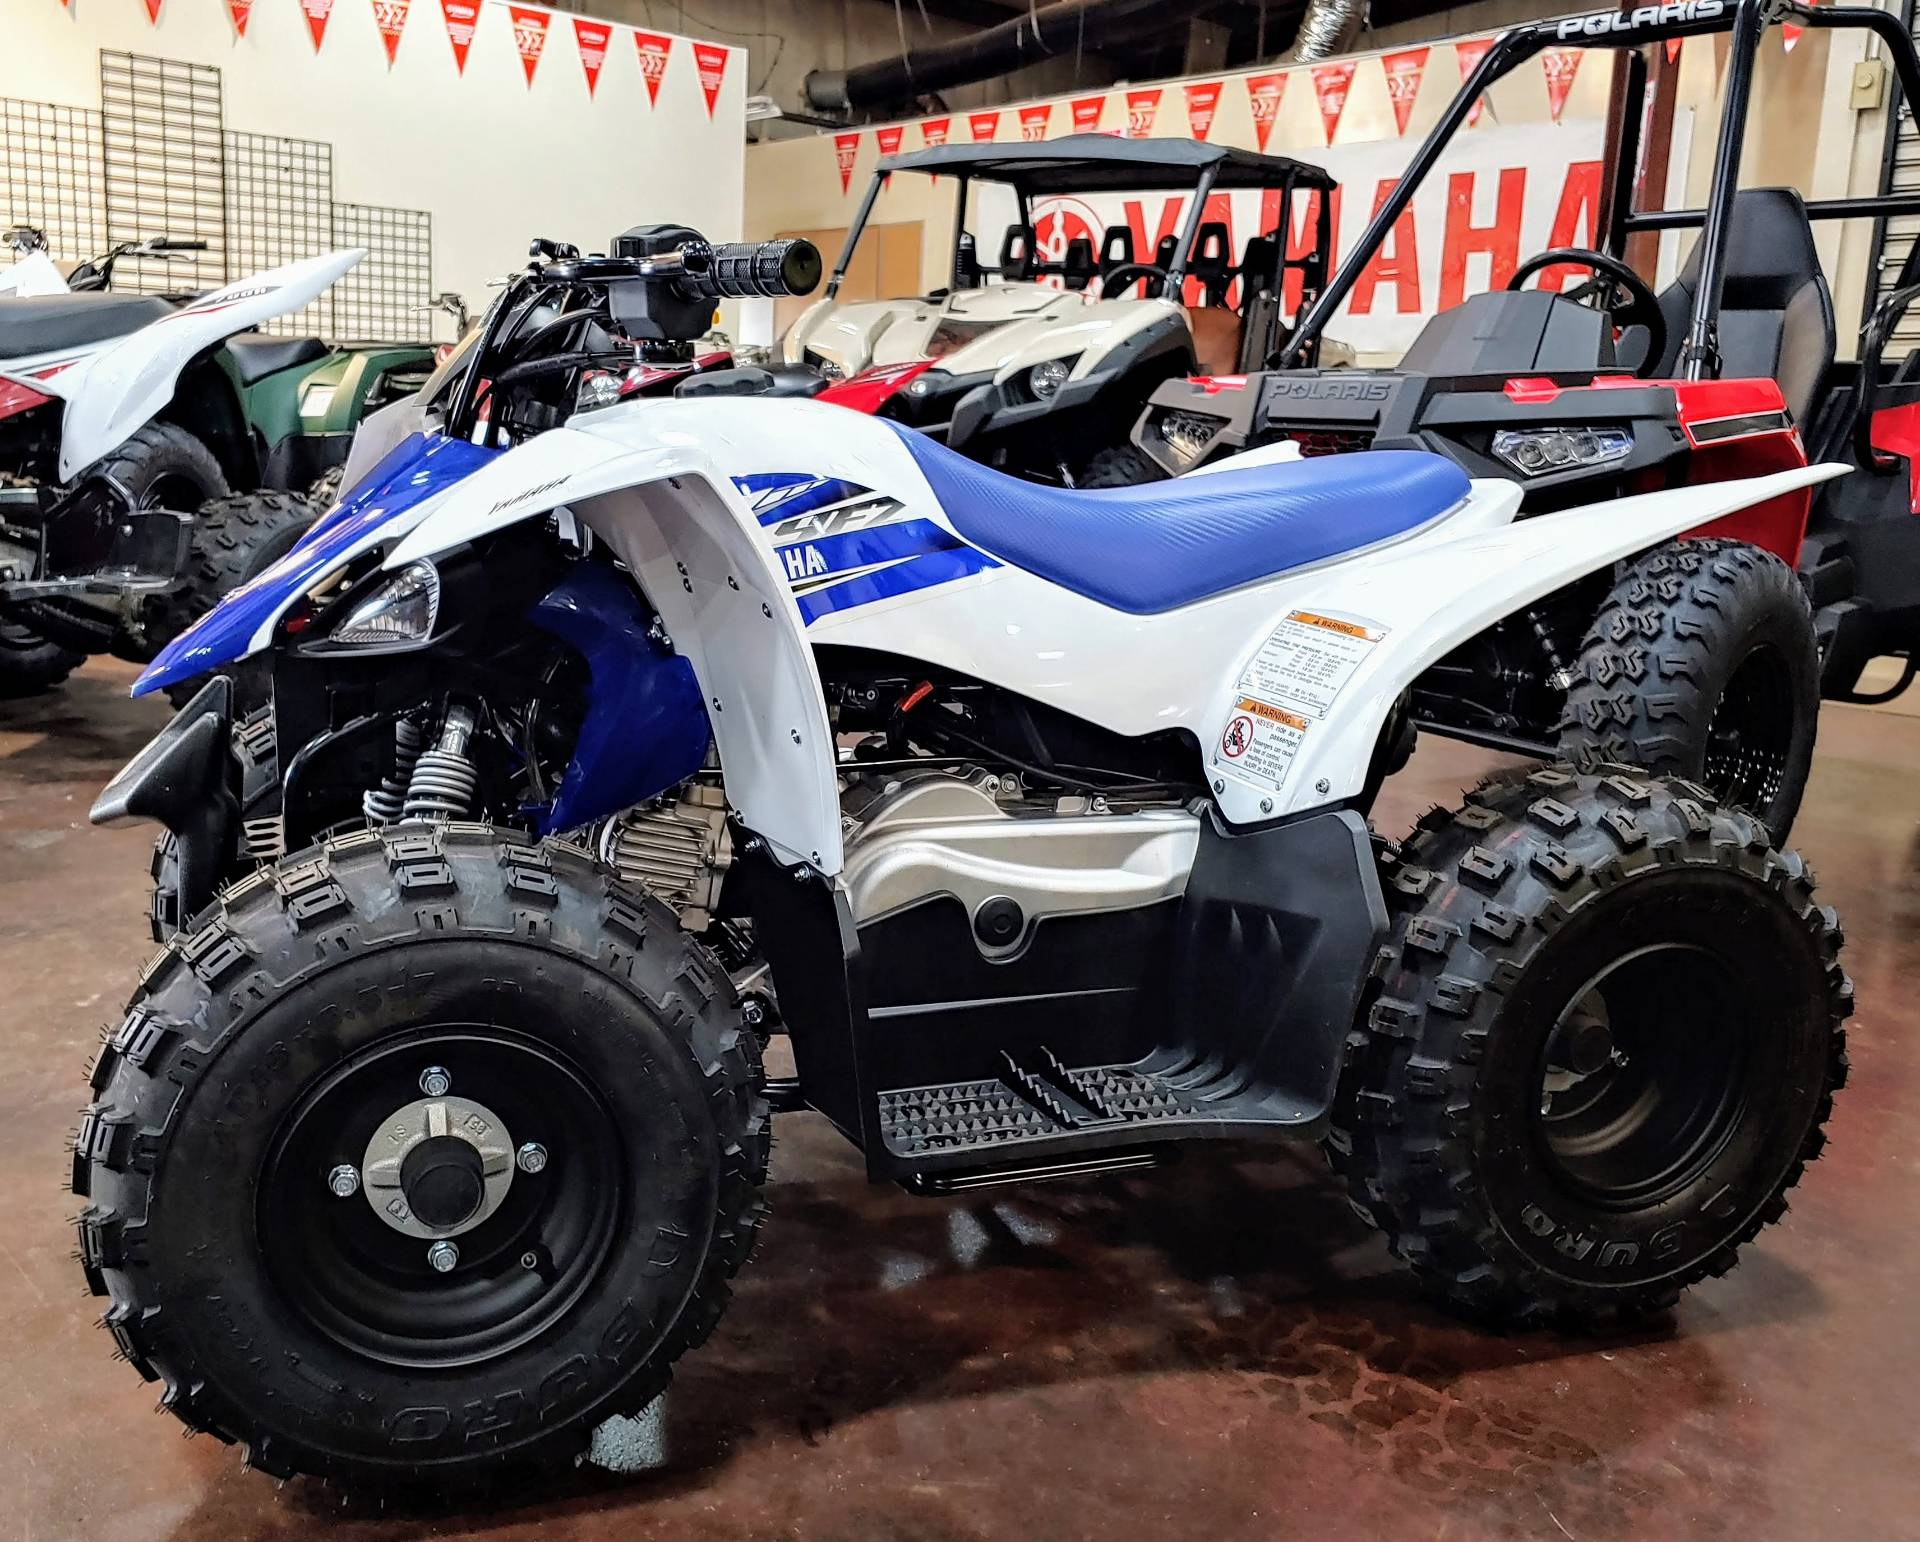 2018 Yamaha YFZ50 in Statesville, North Carolina - Photo 1